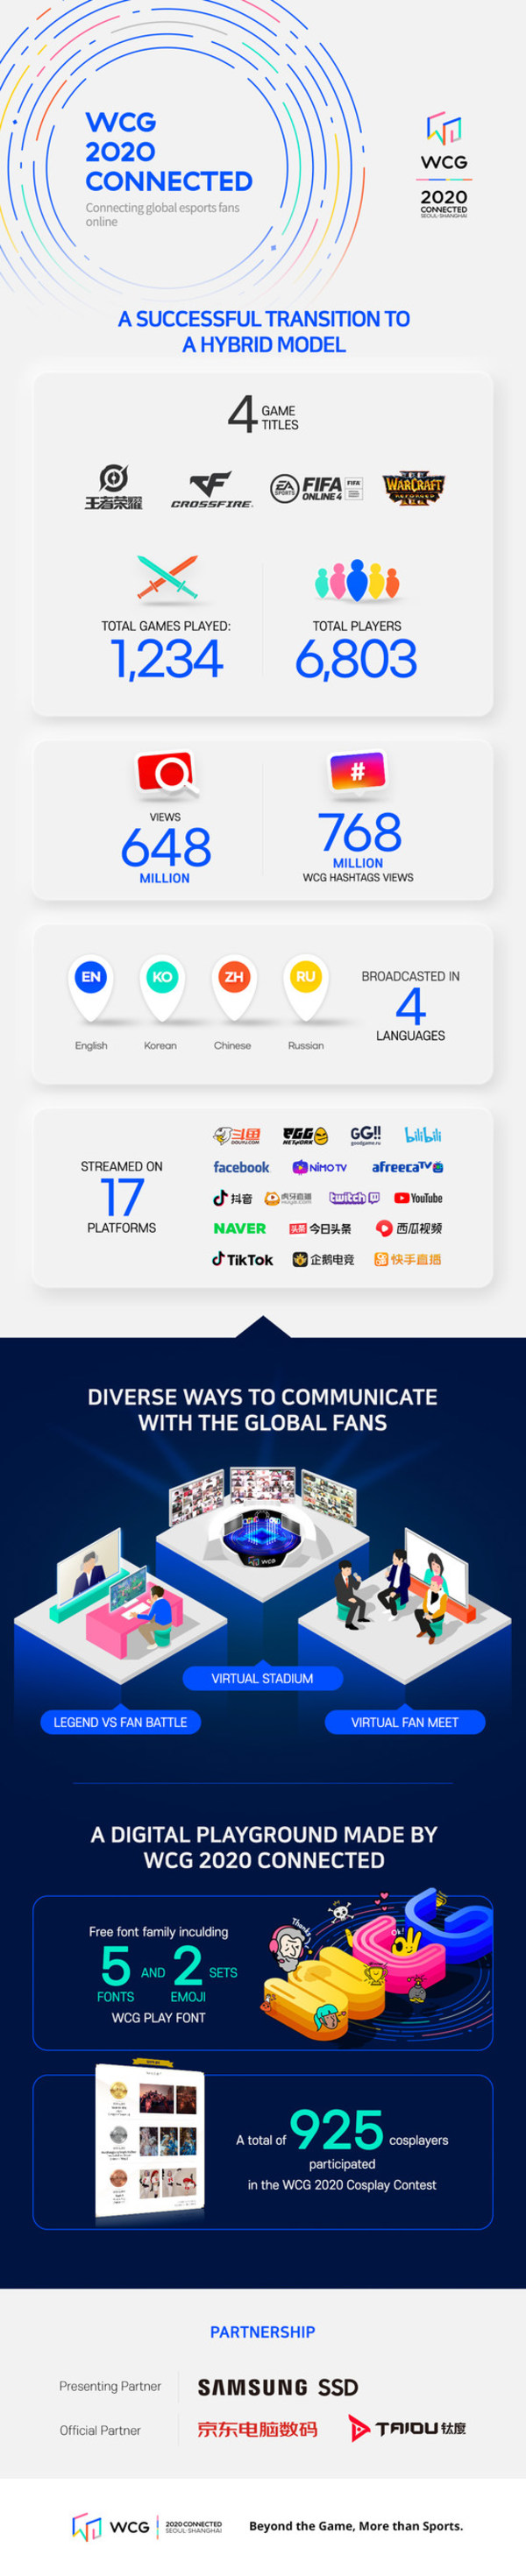 More than Half a Billion Tune In To WCG 2020 CONNECTED